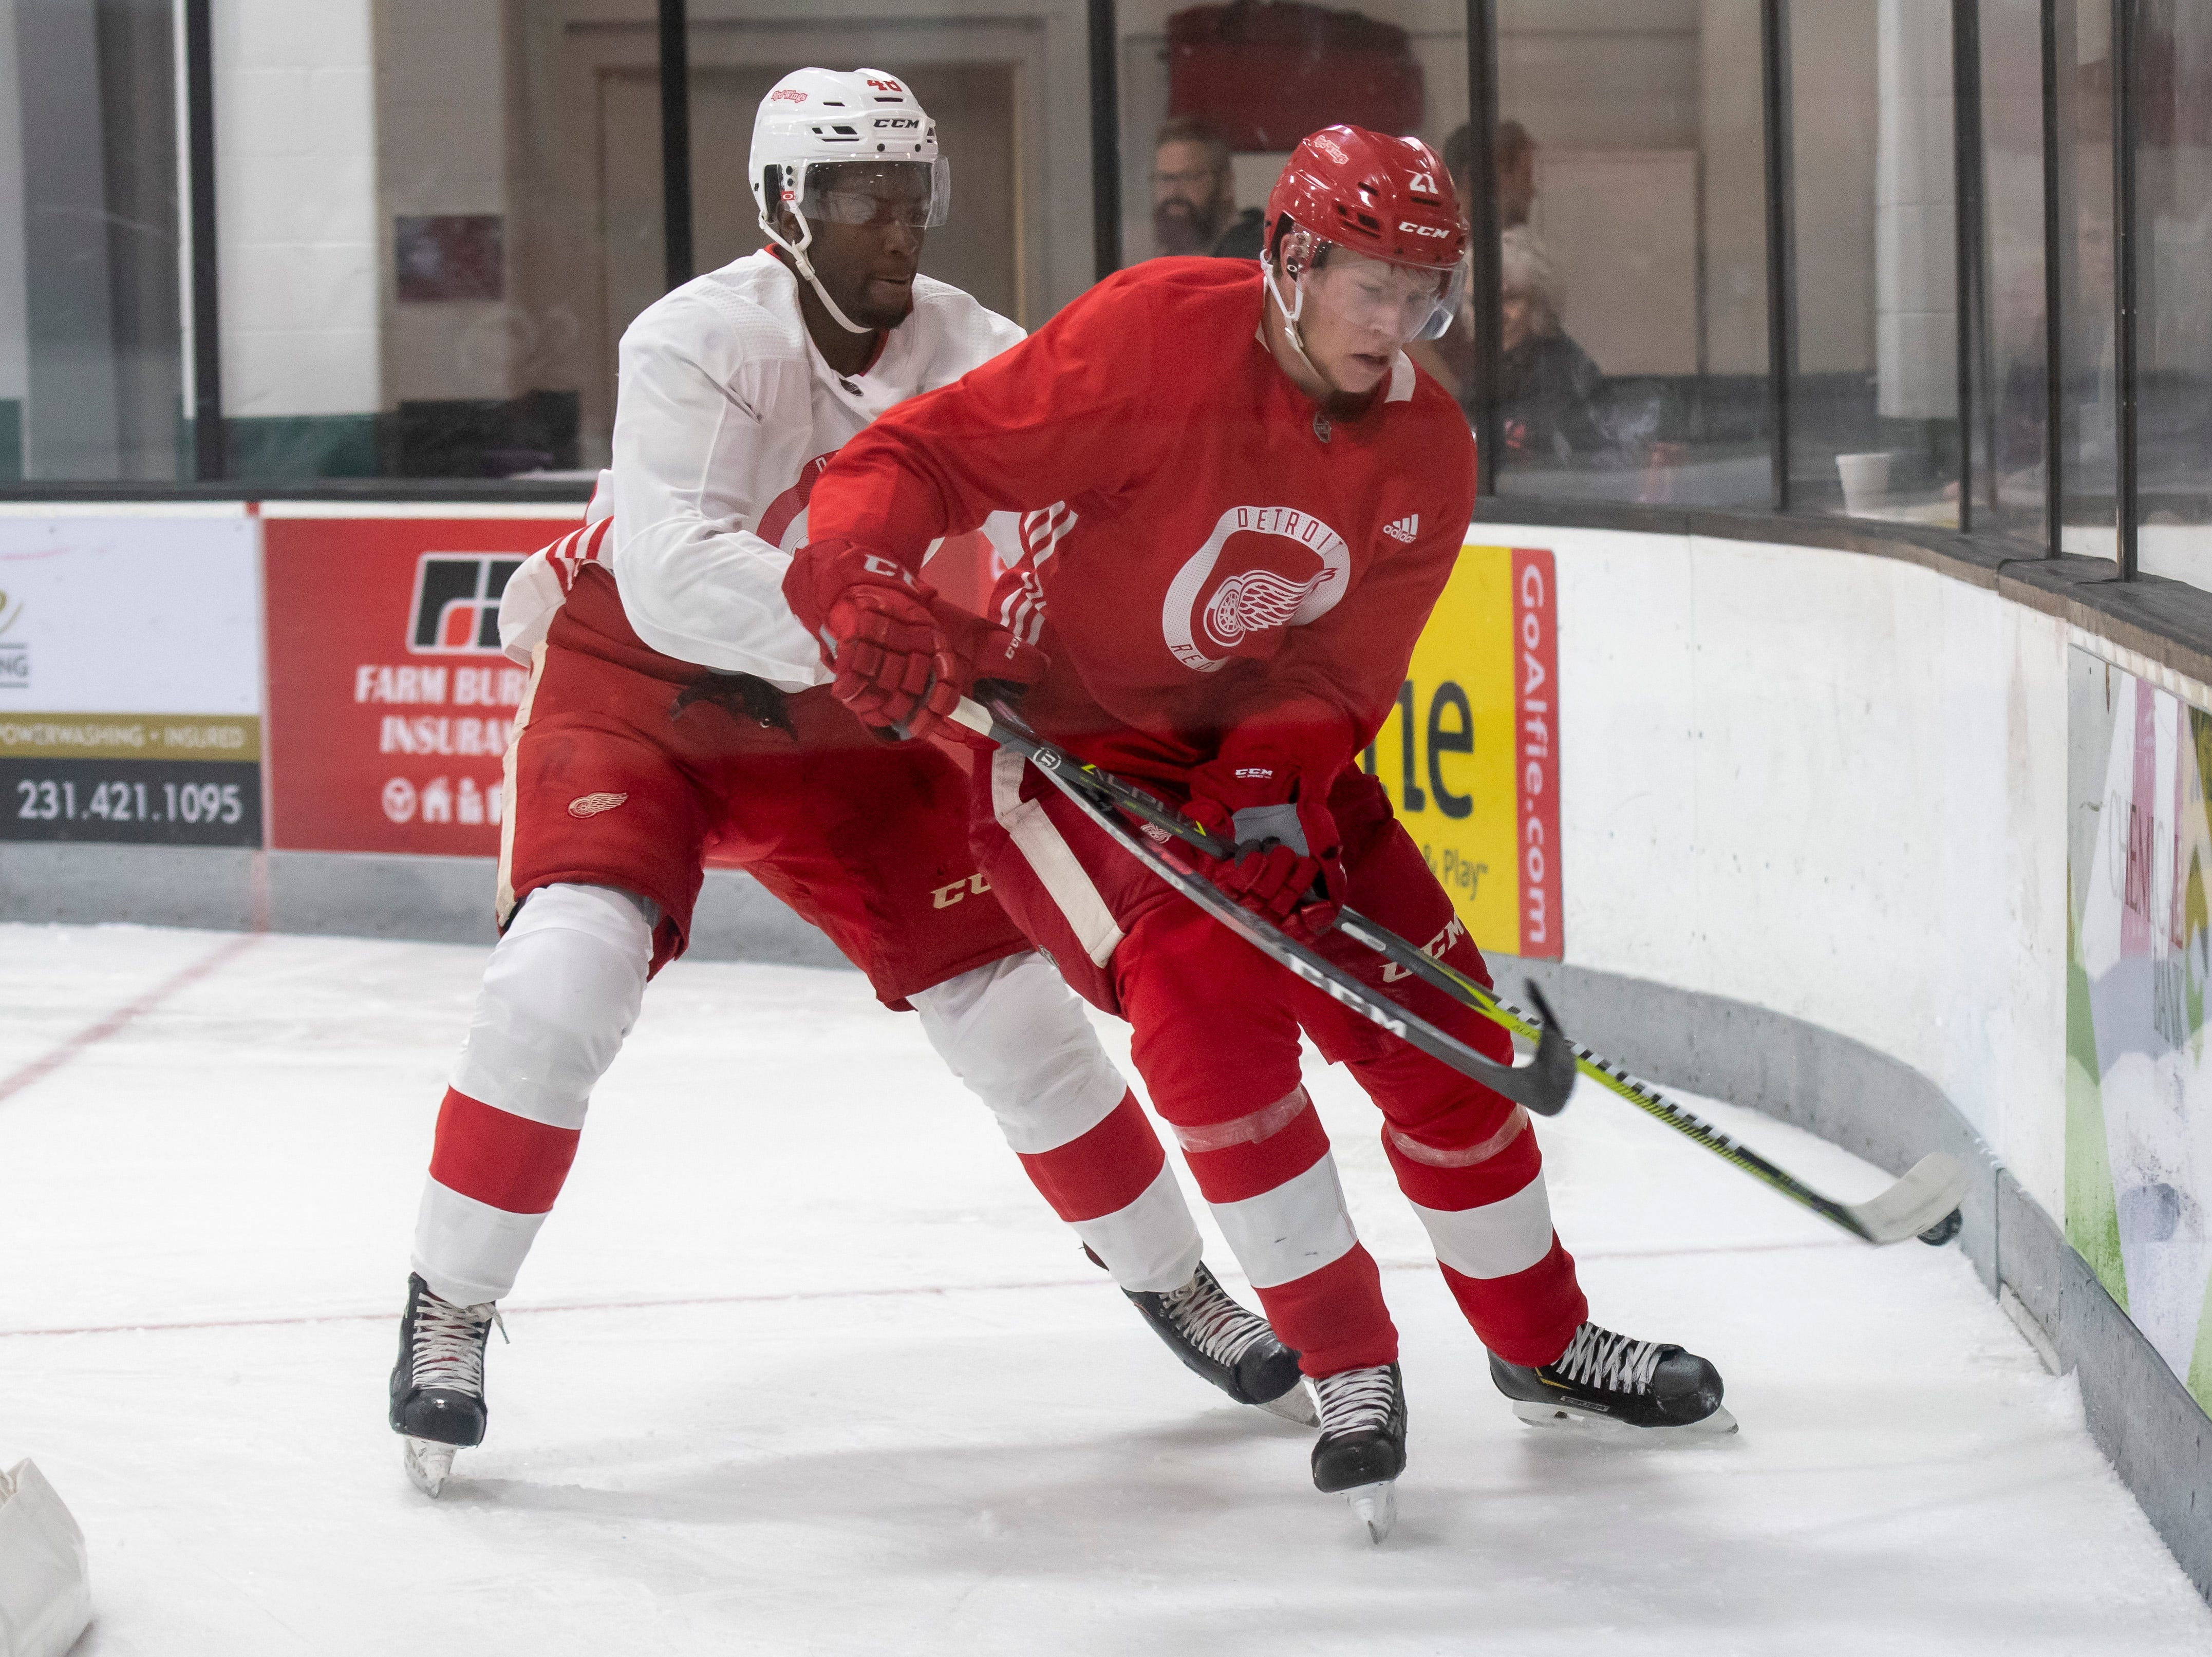 Detroit forward Givani Smith, left, and defenseman Dennis Cholowski battle for the puck during a scrimmage.